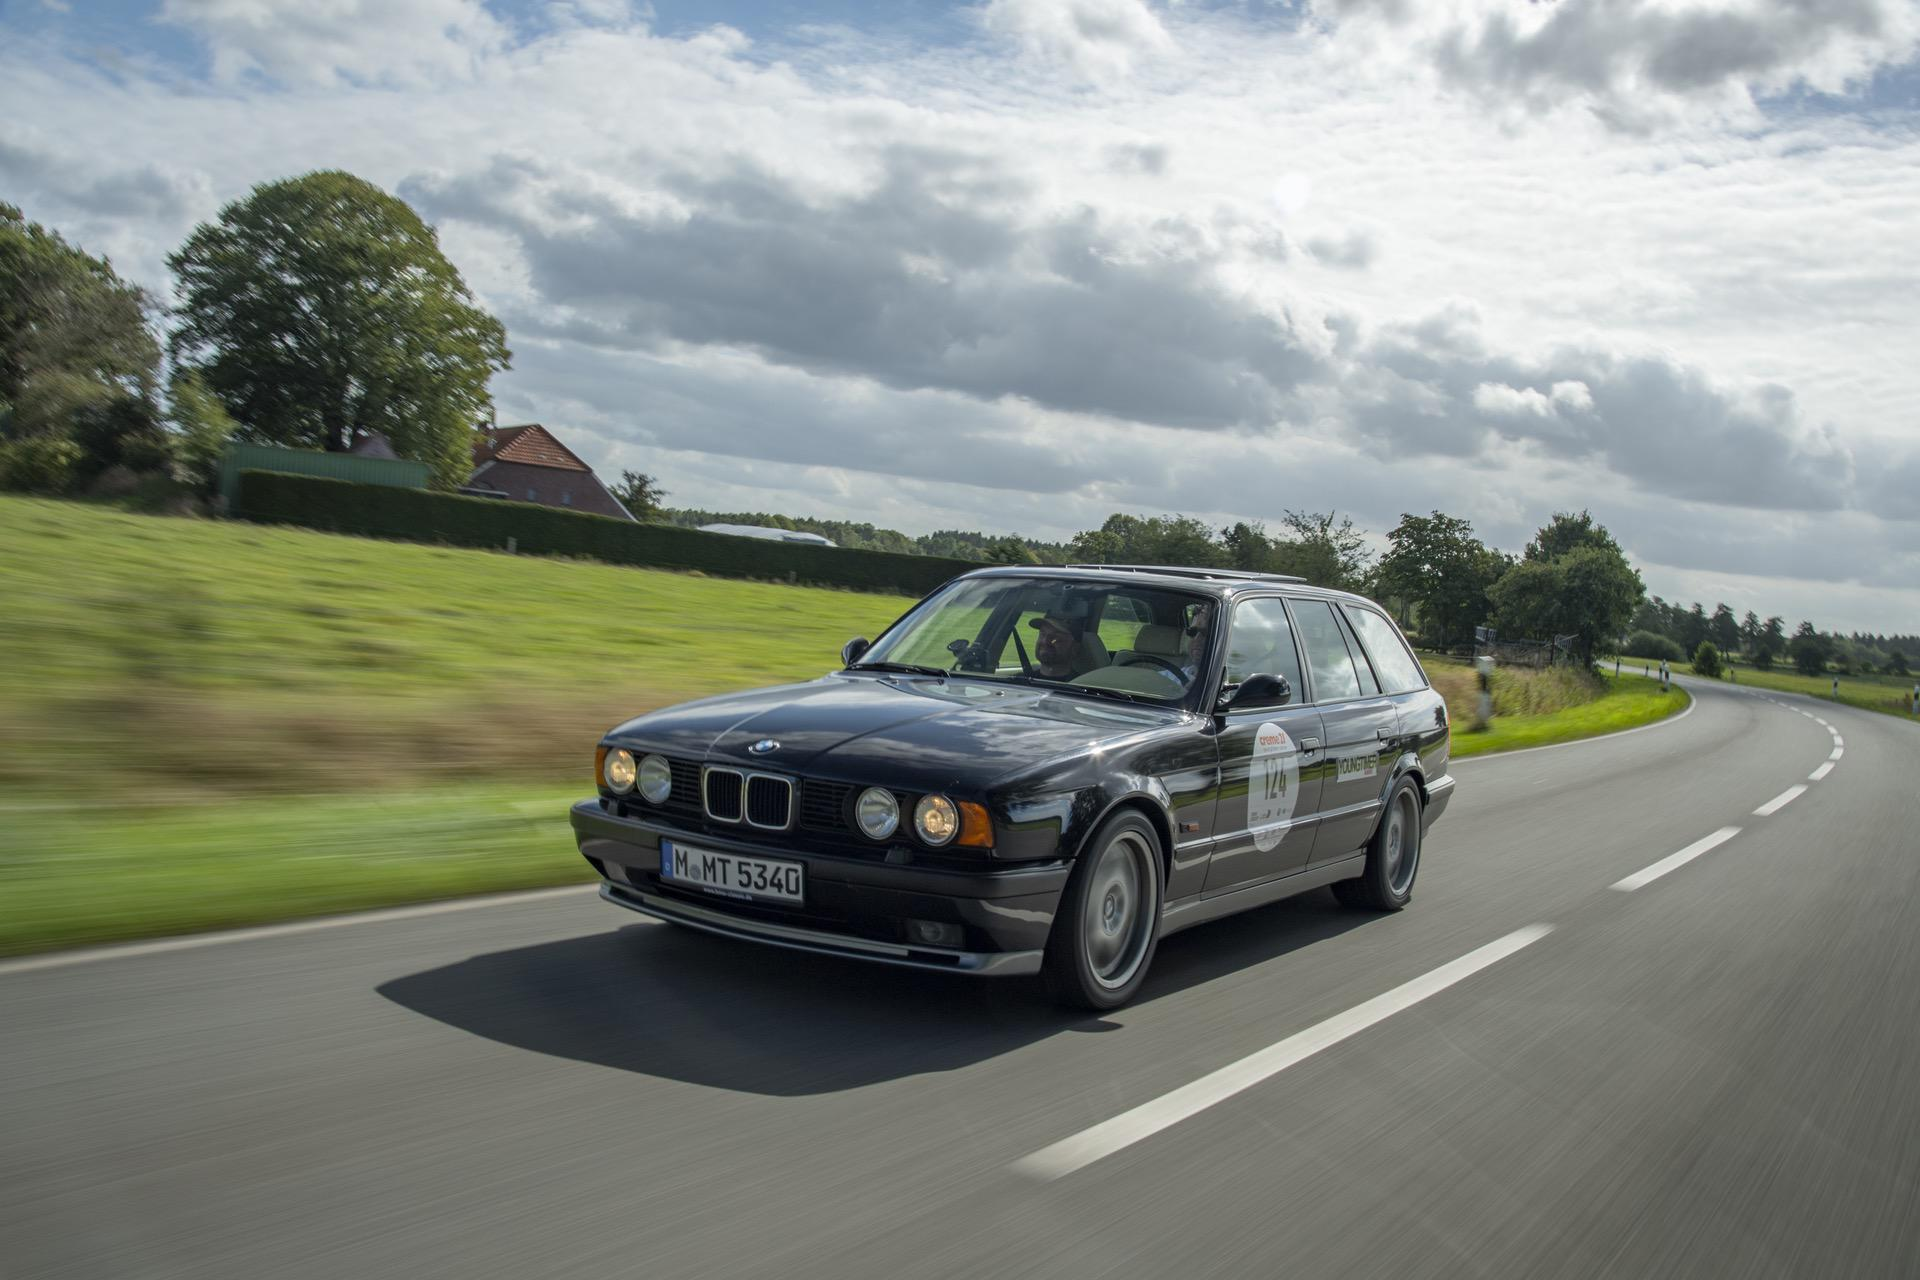 Bmw E34 M5 Touring It Was Once The World S Fastest Wagon